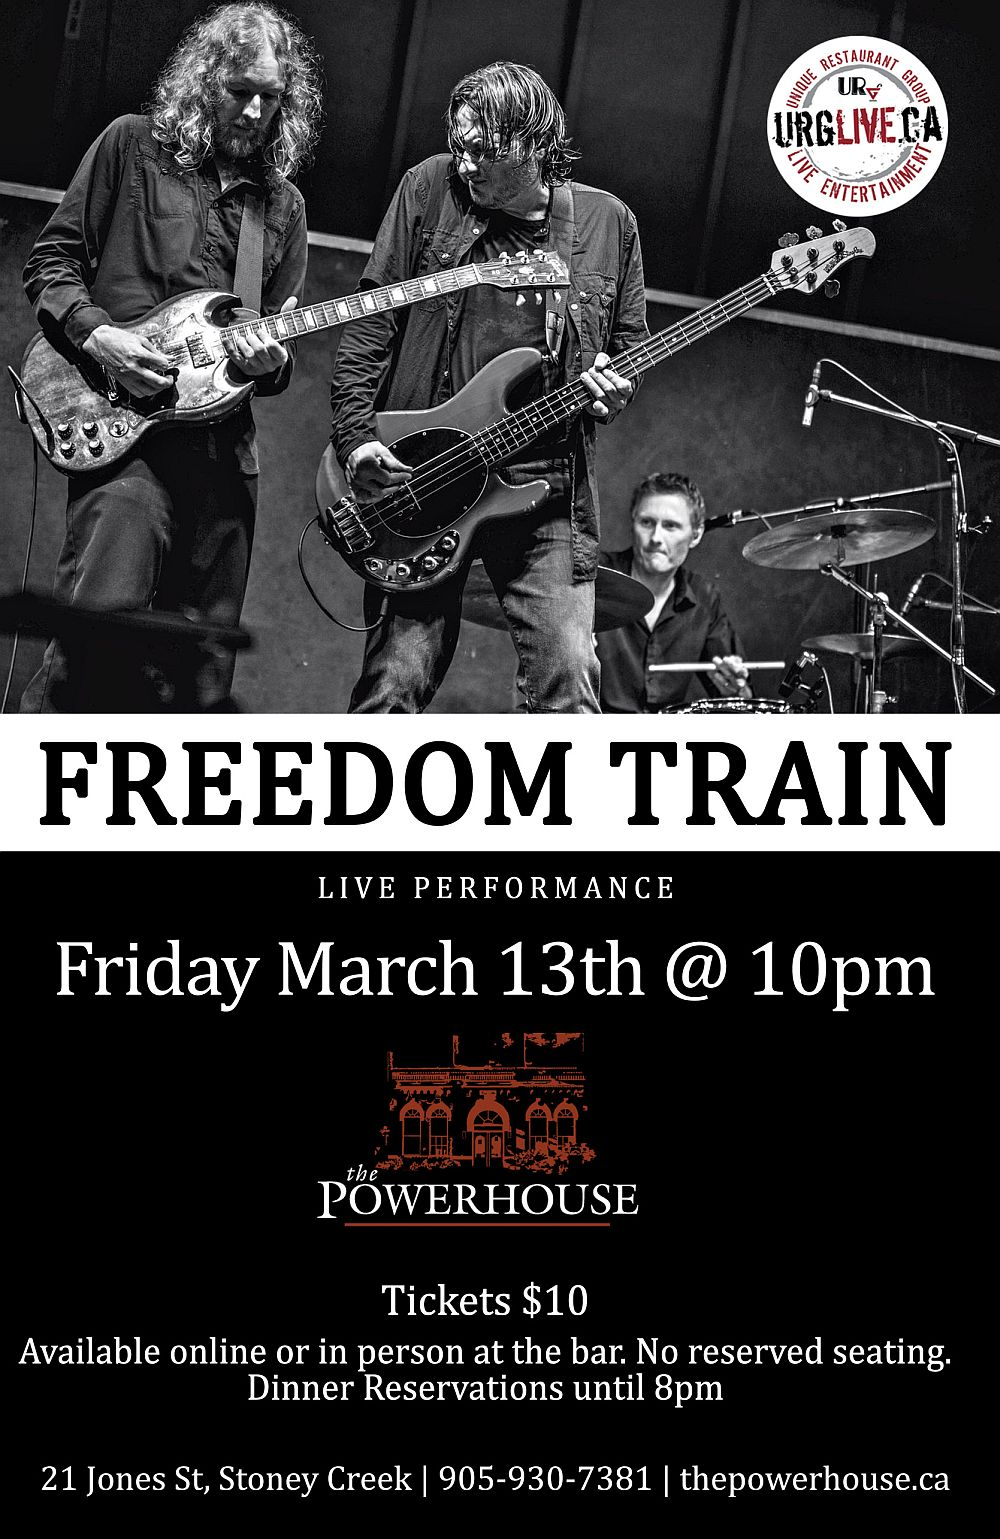 Freedom Train - Friday March 13th, 2020 at The Powerhouse - Stoney Creek, Ontario